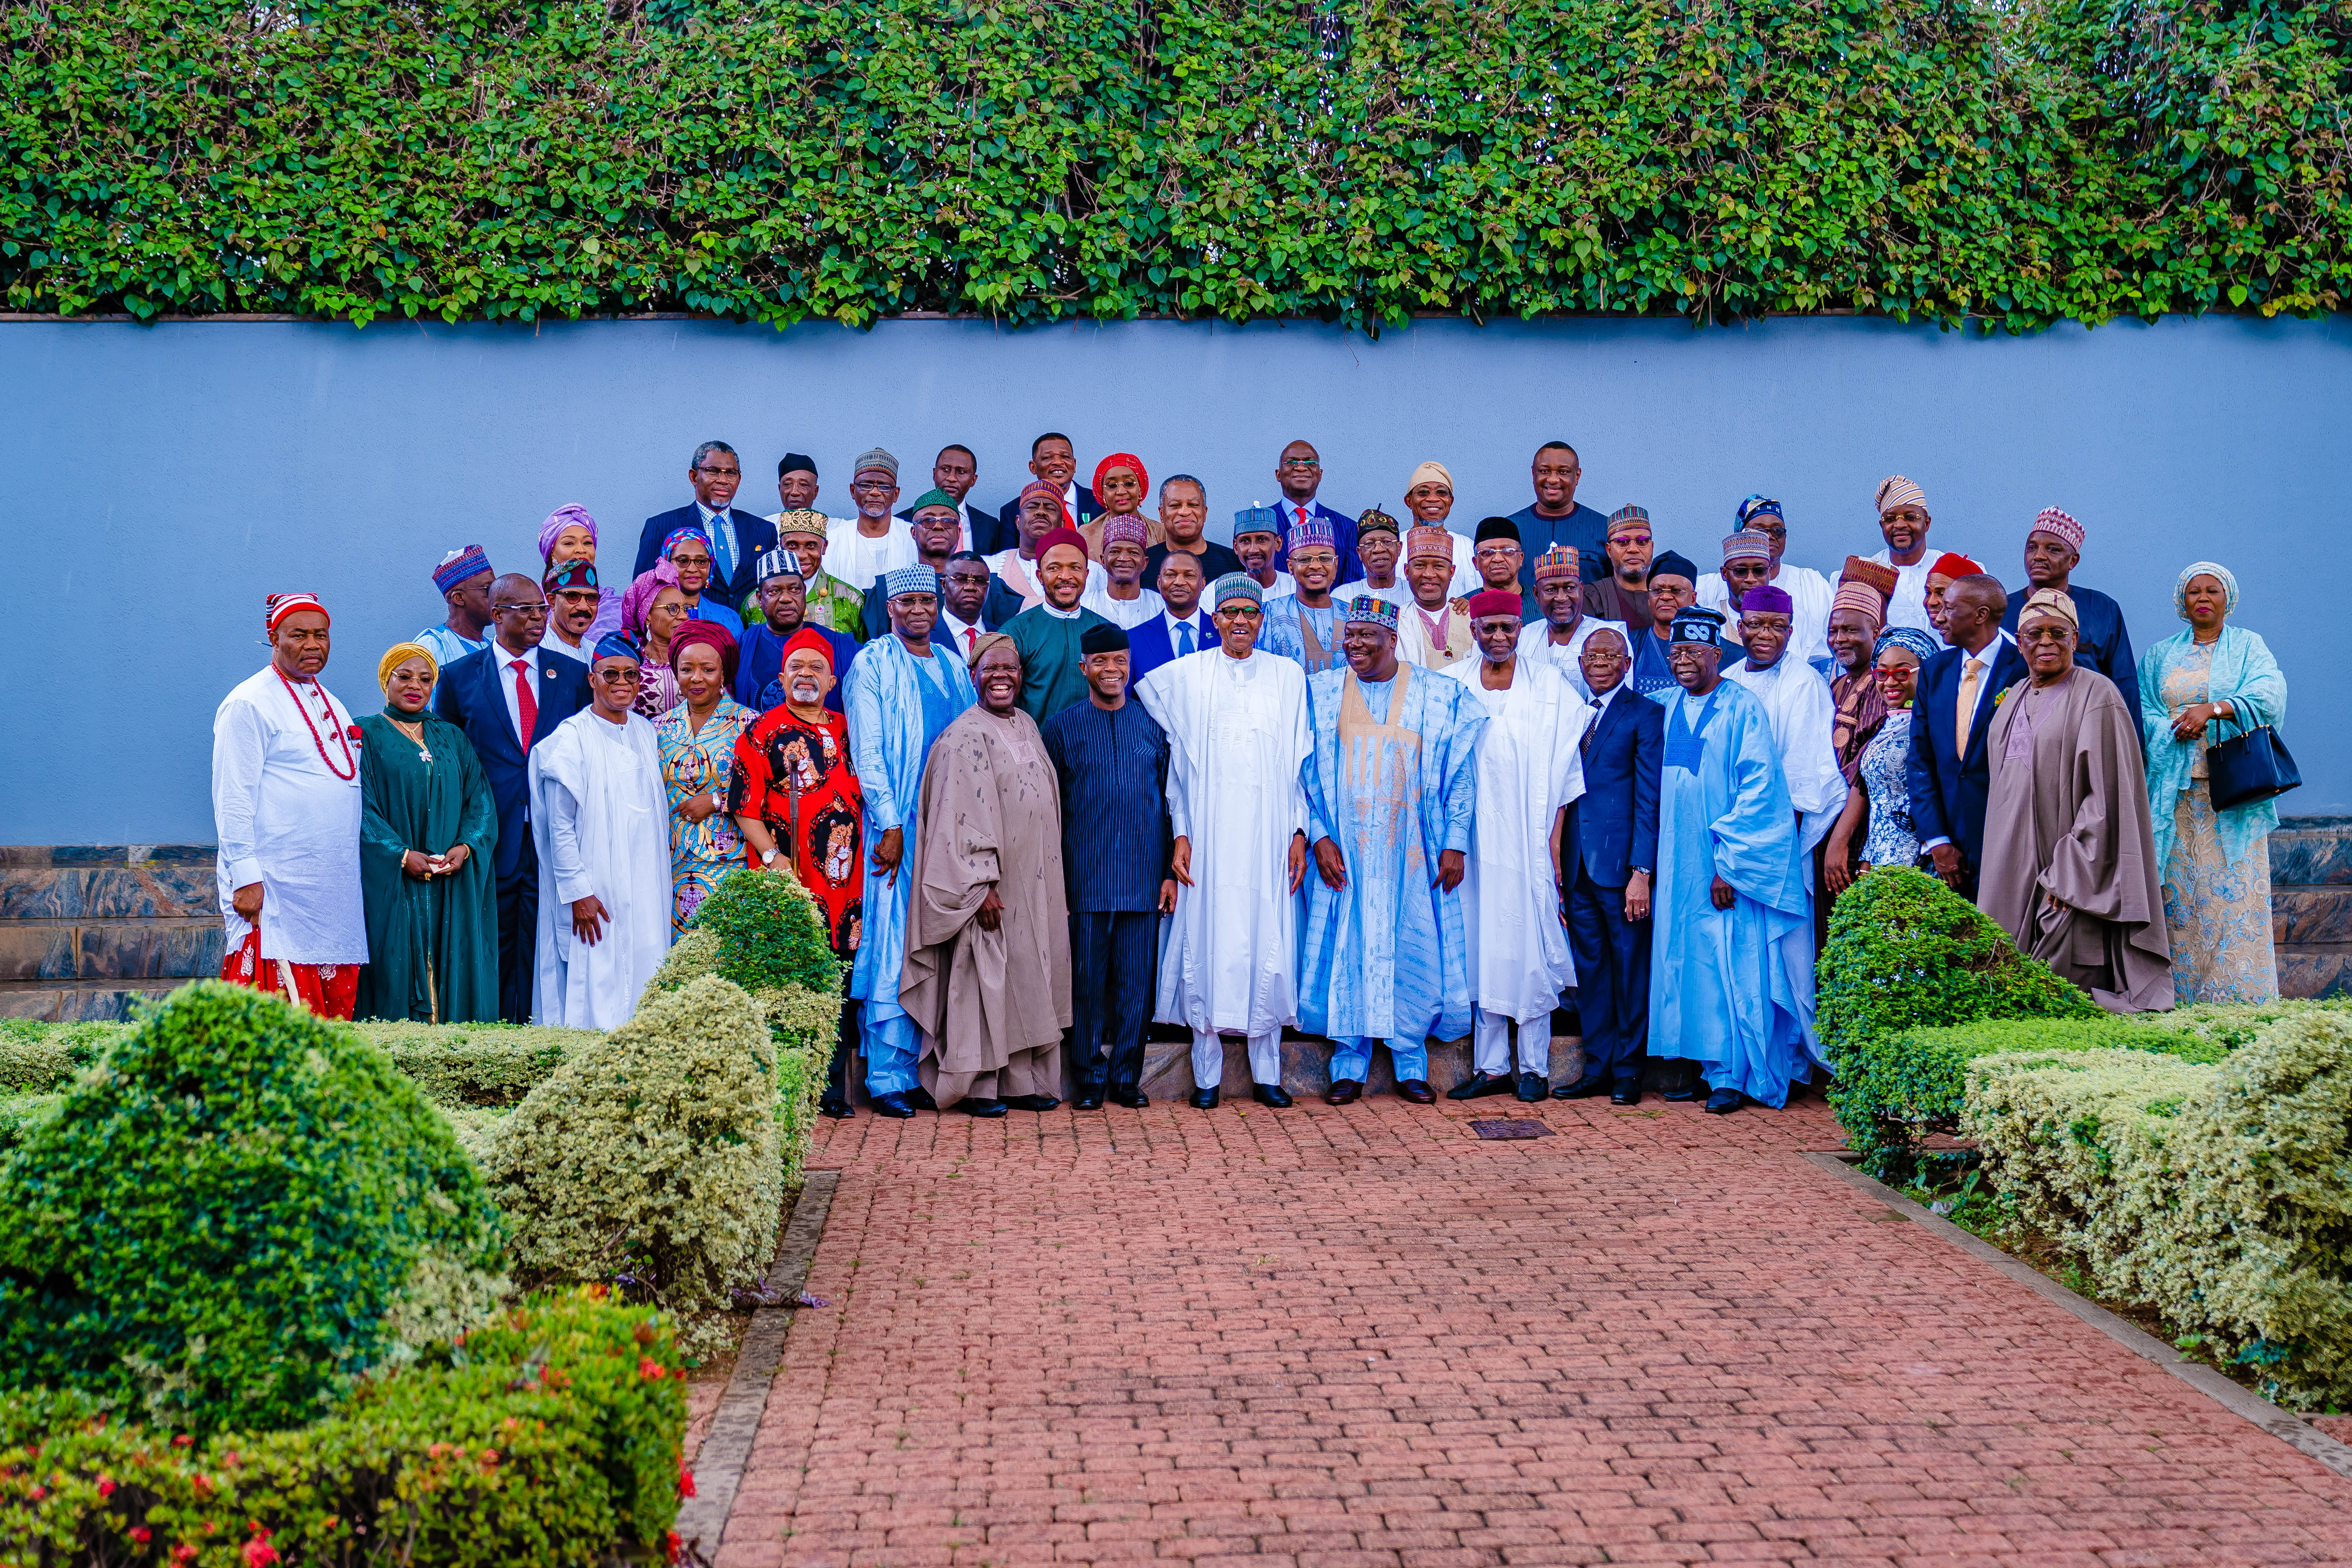 President Muhammadu Buhari Swears In 43 Ministers At The Presidential Villa On 21/08/2019